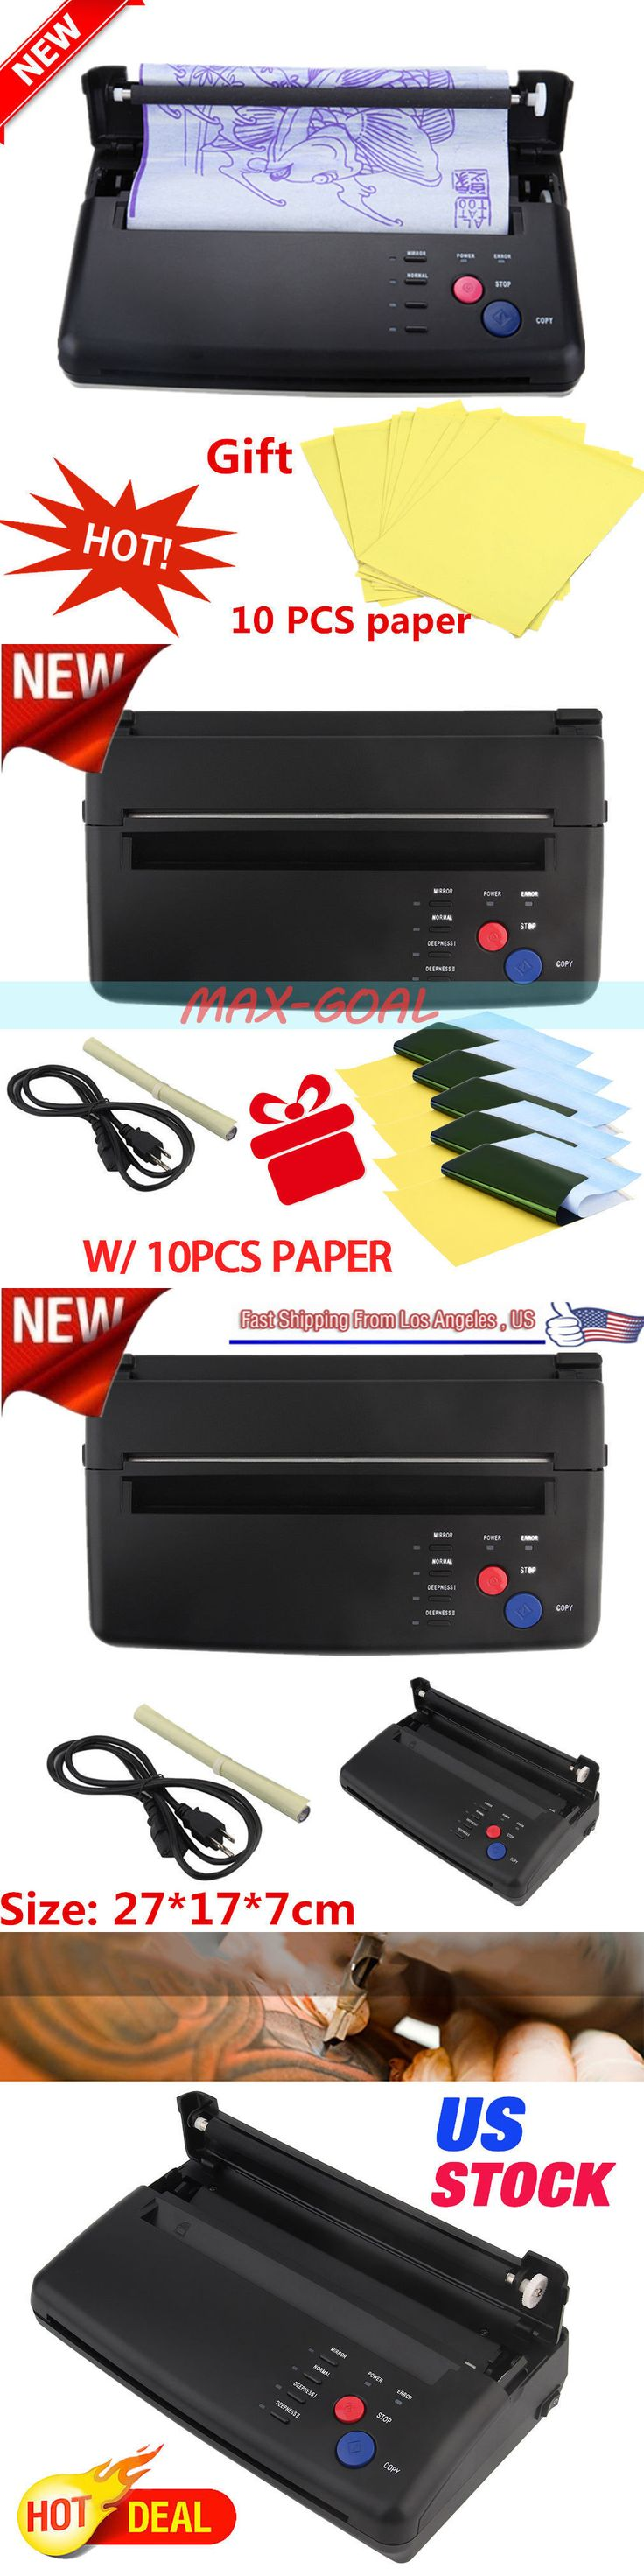 Stencils and Accessories: Tattoo Stencil Maker Transfer Machine Flash Thermal Copier Printer +10 Papers Oy BUY IT NOW ONLY: $121.95